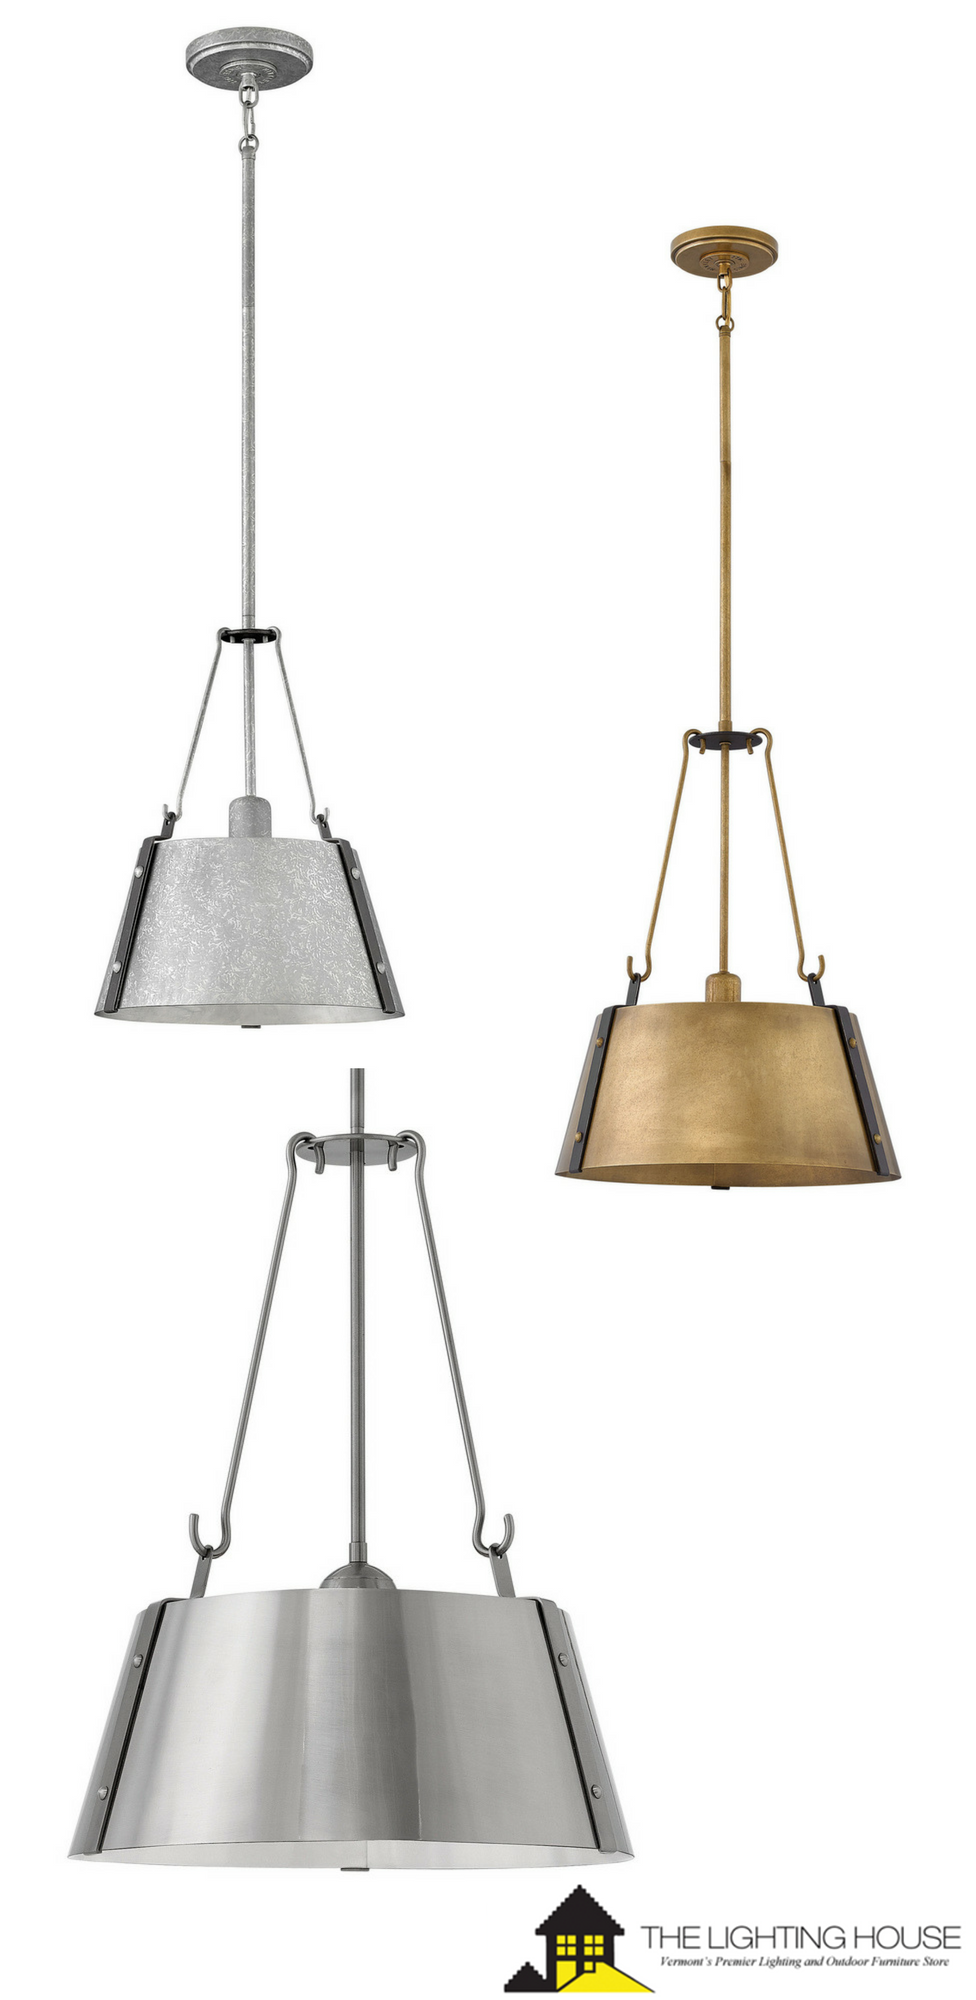 The cartwright pendant collection captures a modern farmhouse